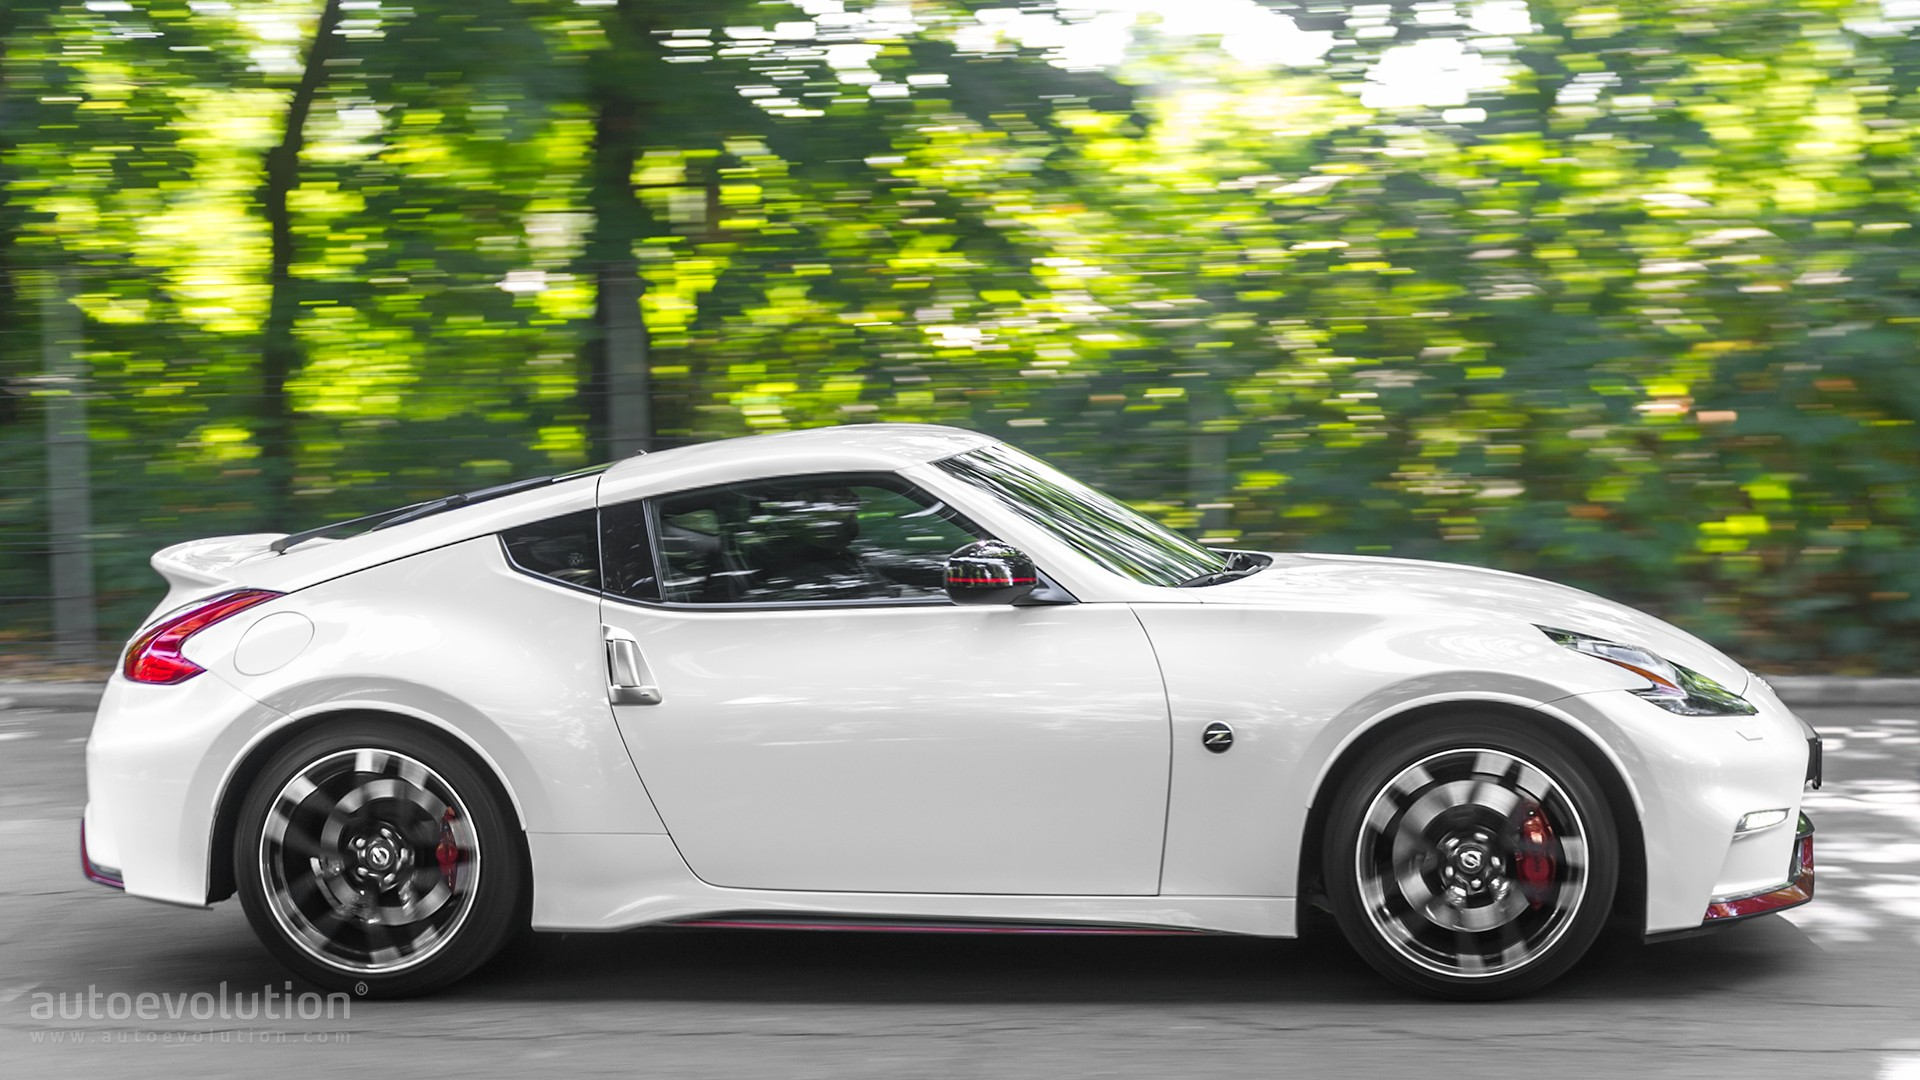 370z nismo specs 0 60 autos weblog. Black Bedroom Furniture Sets. Home Design Ideas